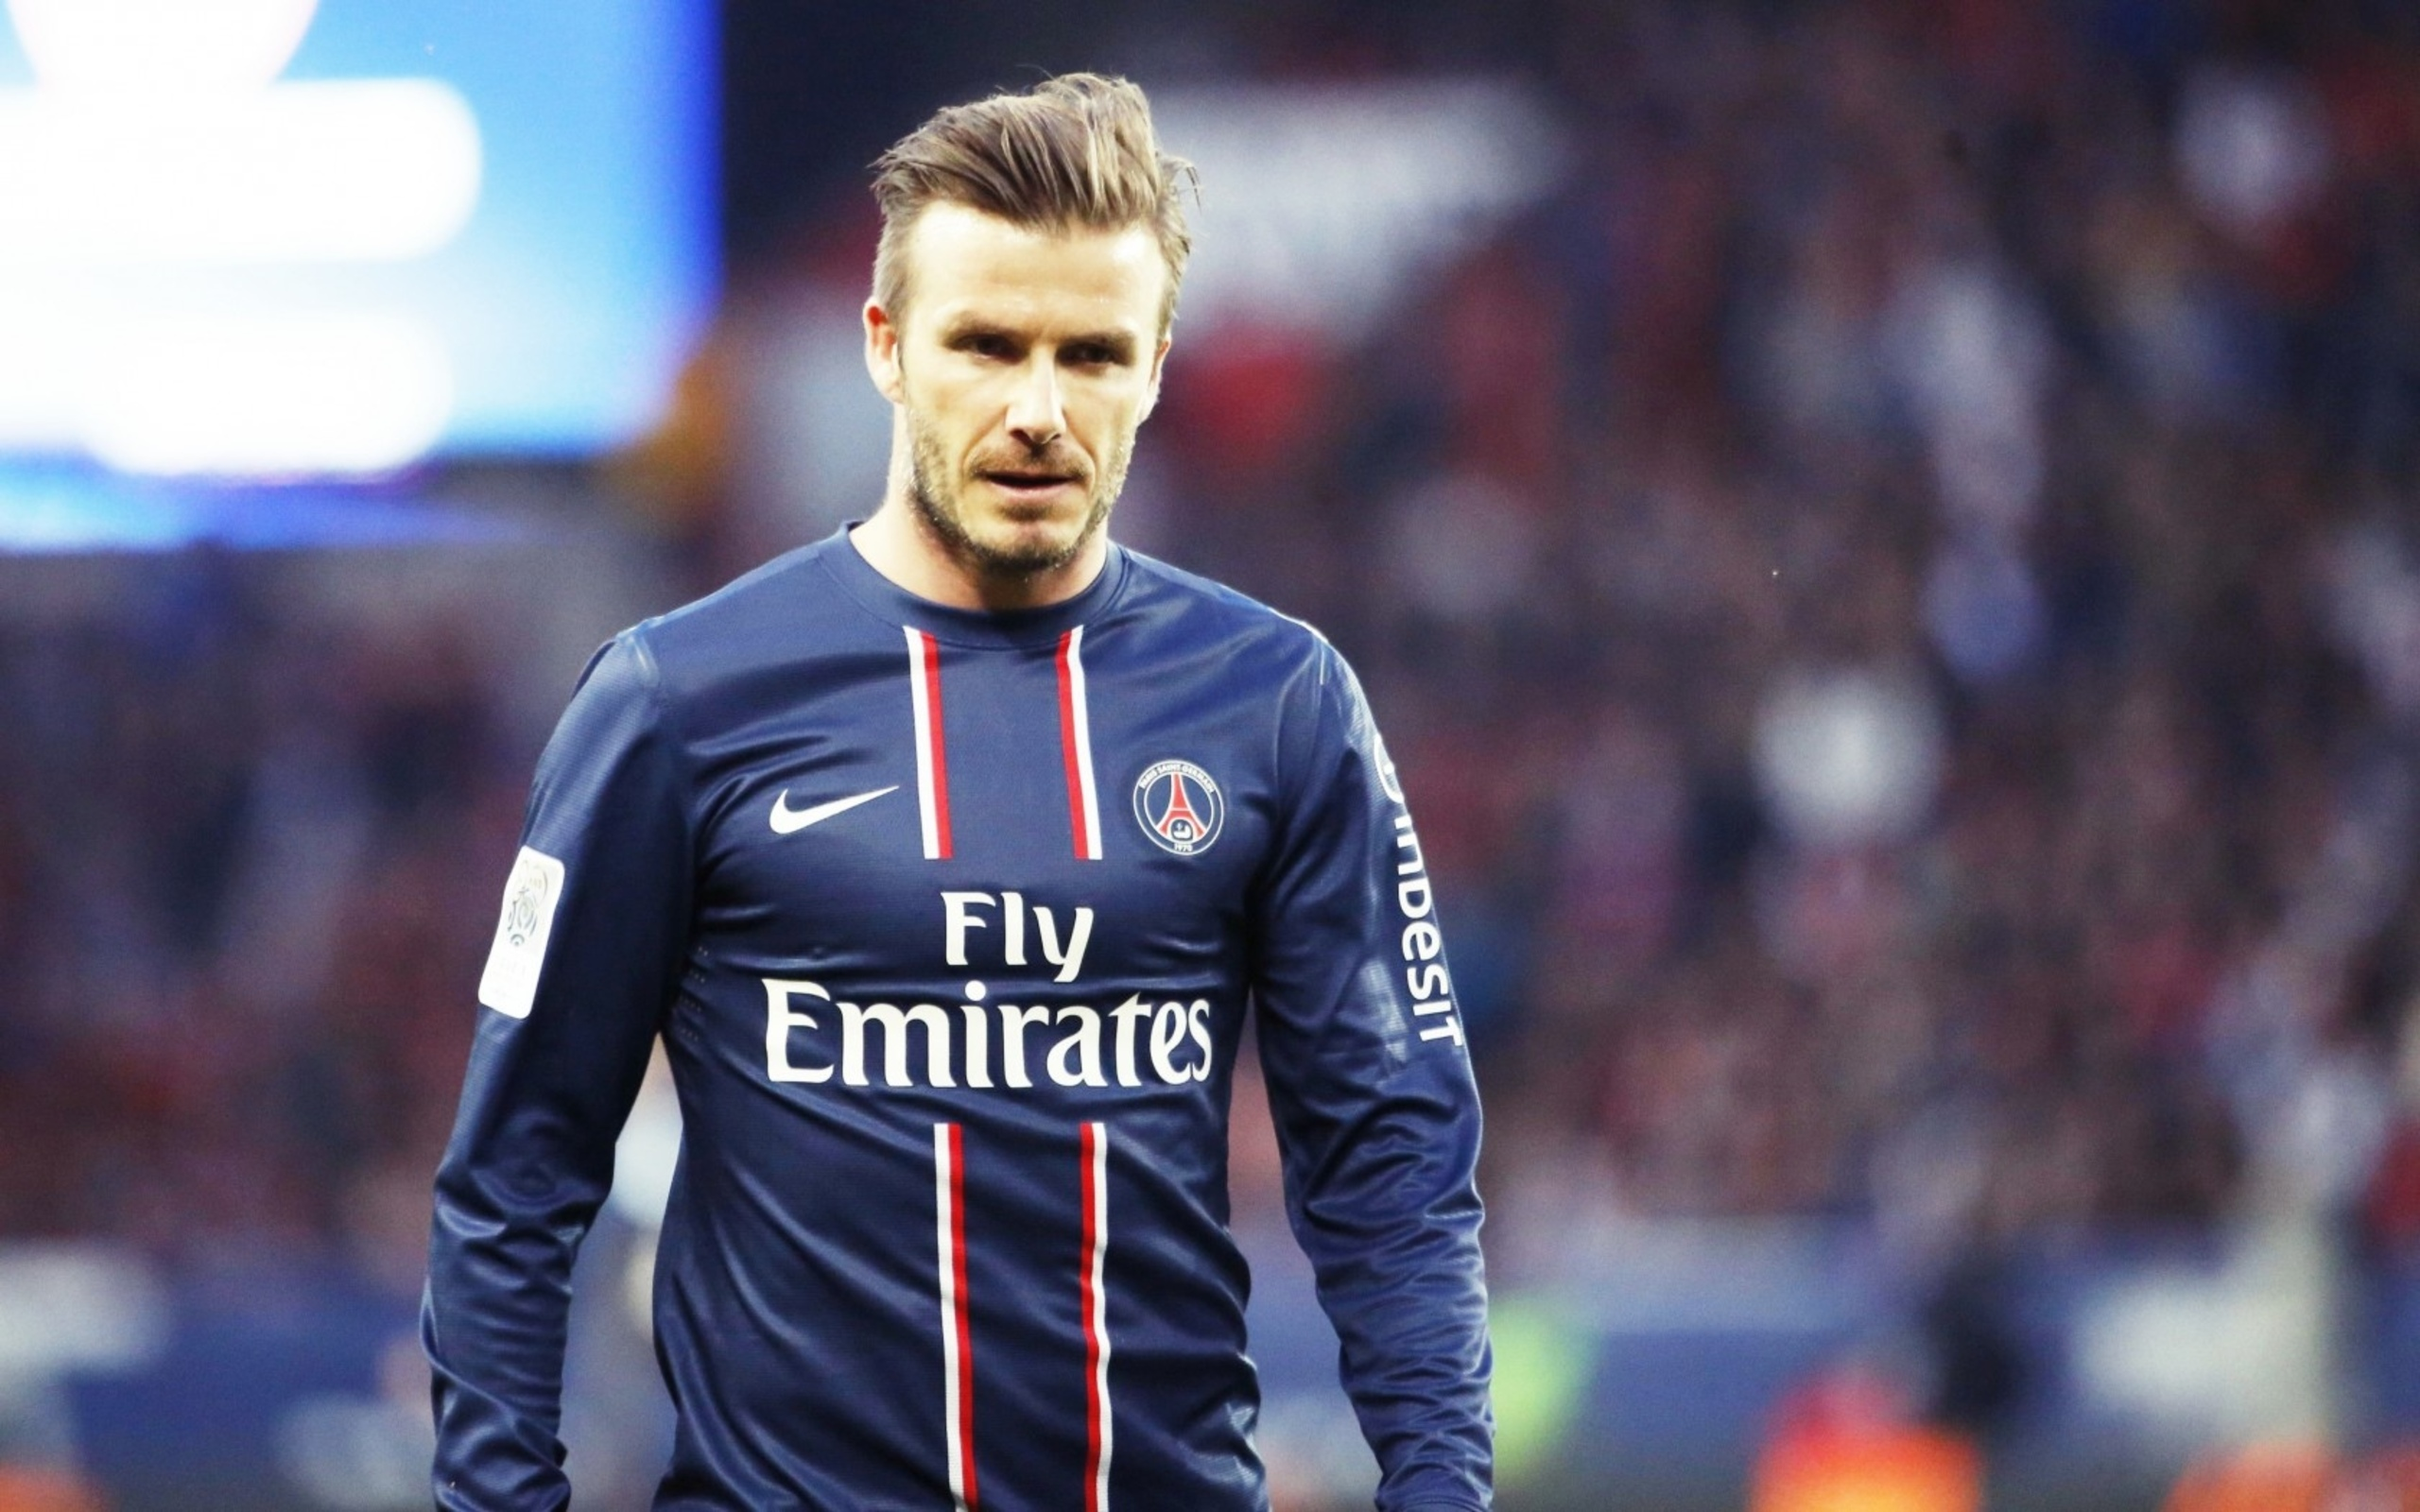 David Beckham New HD Pictures Wallpapers 2015 - All HD Wallpapers